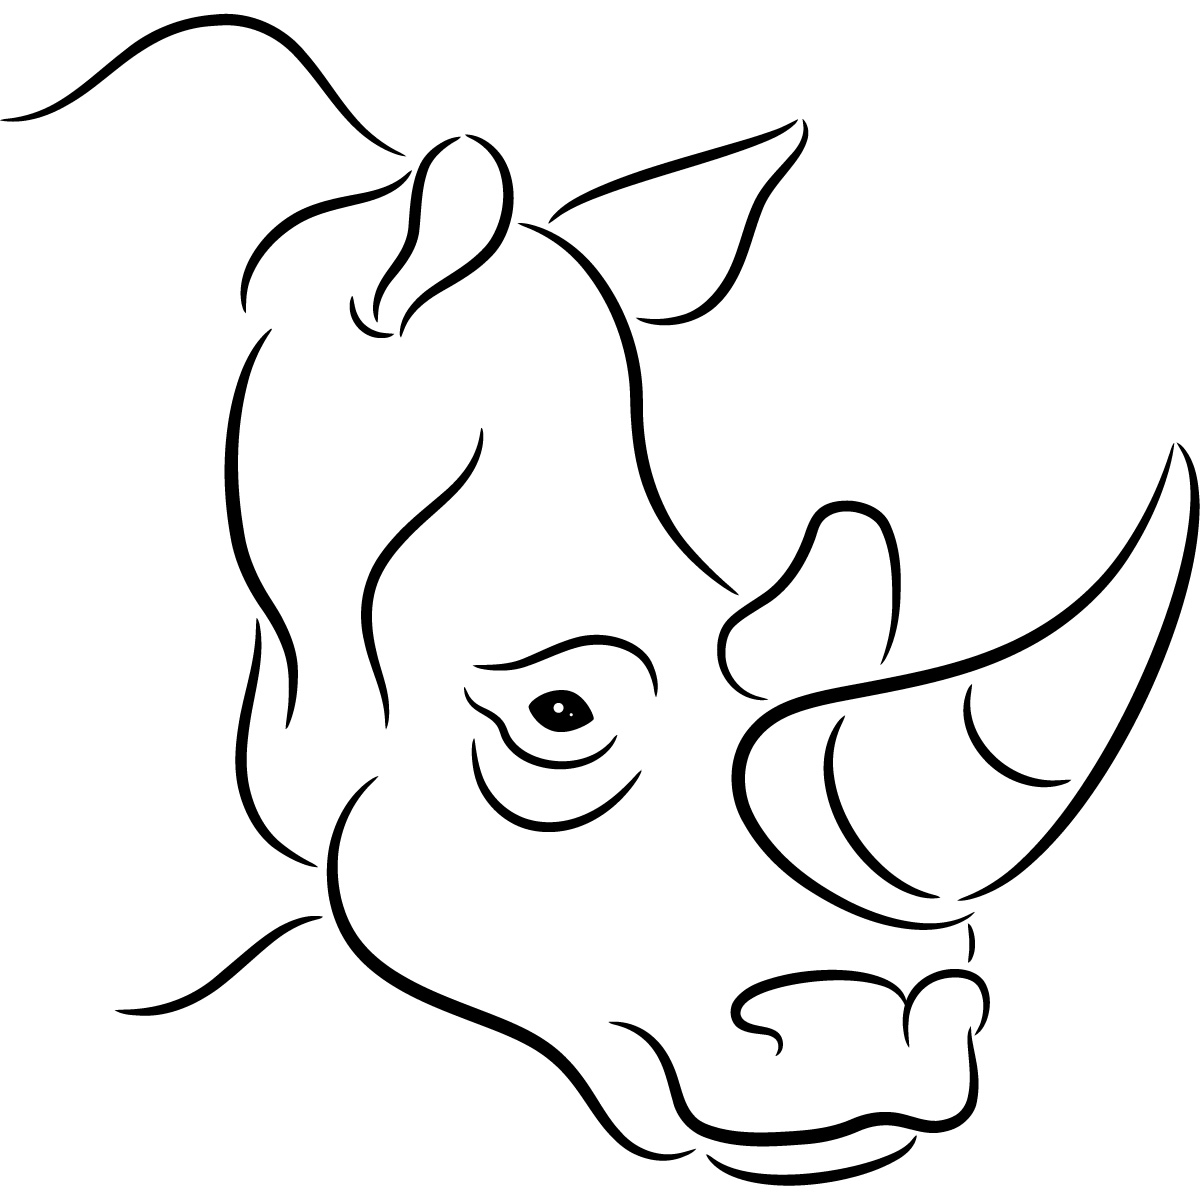 Free Images Of Wild Animals Only Outline Download Free Clip Art Free Clip Art On Clipart Library